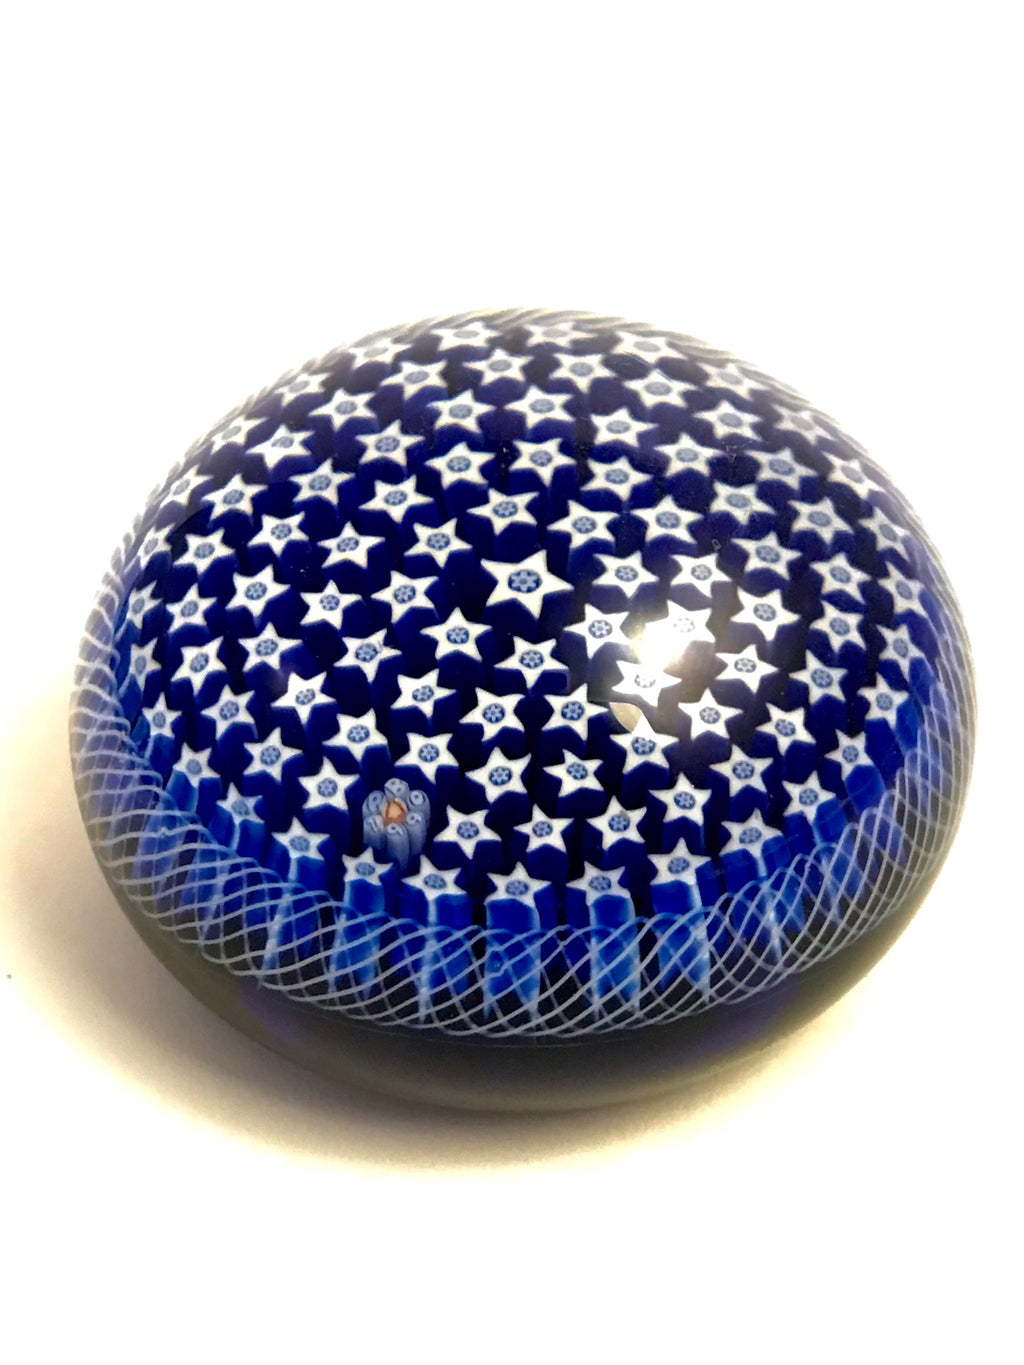 Parabelle 1990 Stars Paperweight